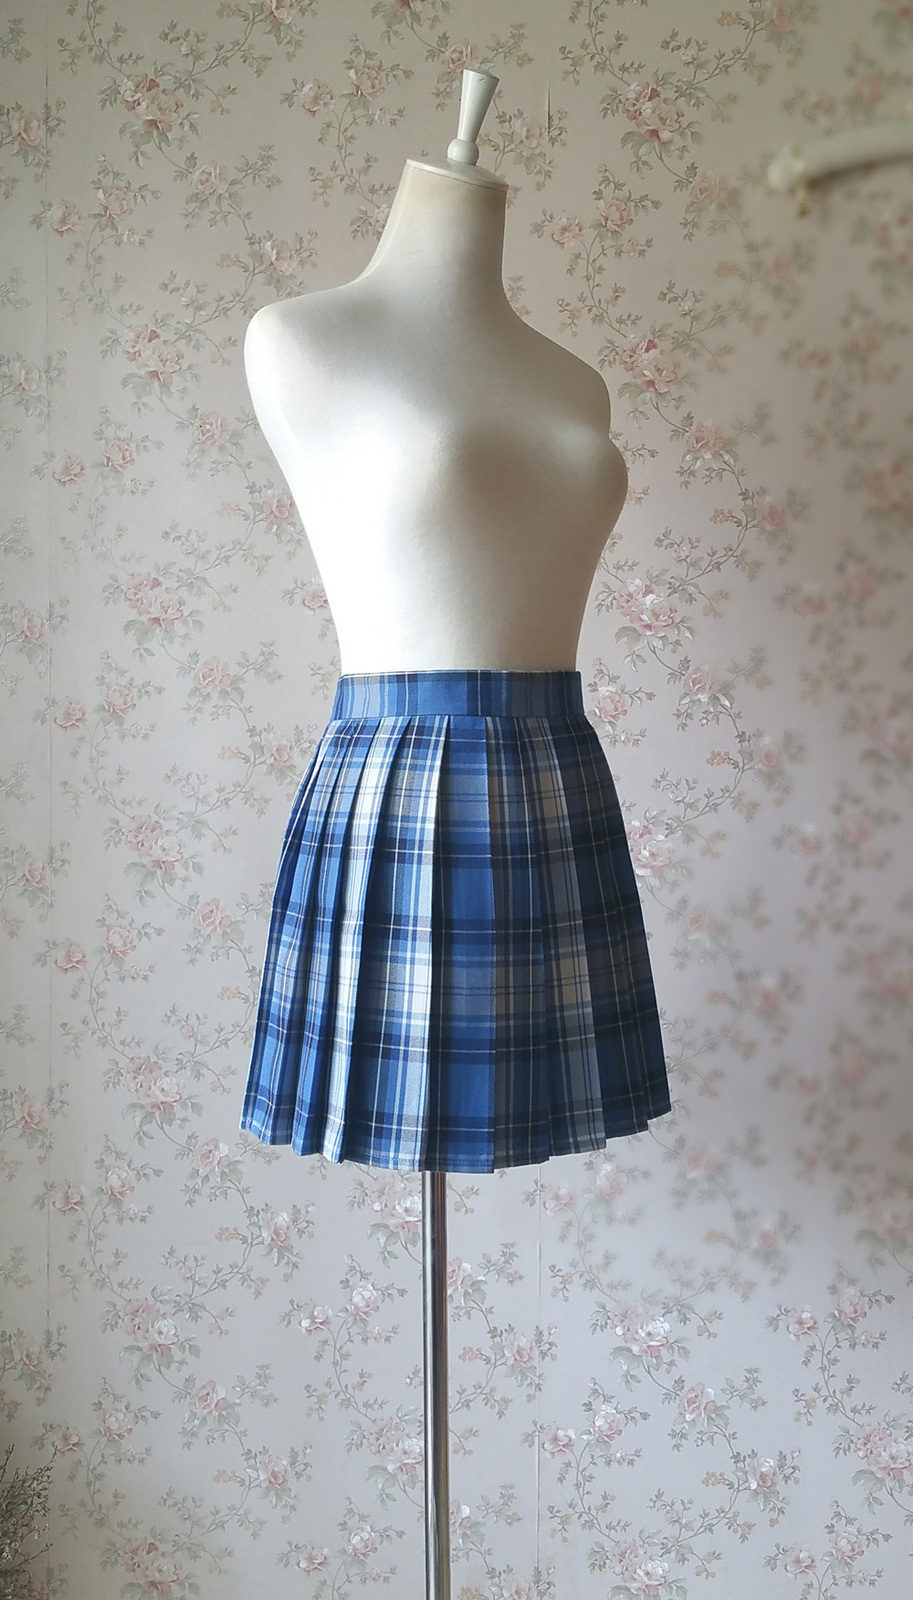 BLUE PLAID Skirt Women Girl Pleated Plaid Skirt School Style Pleated Plaid Skirt